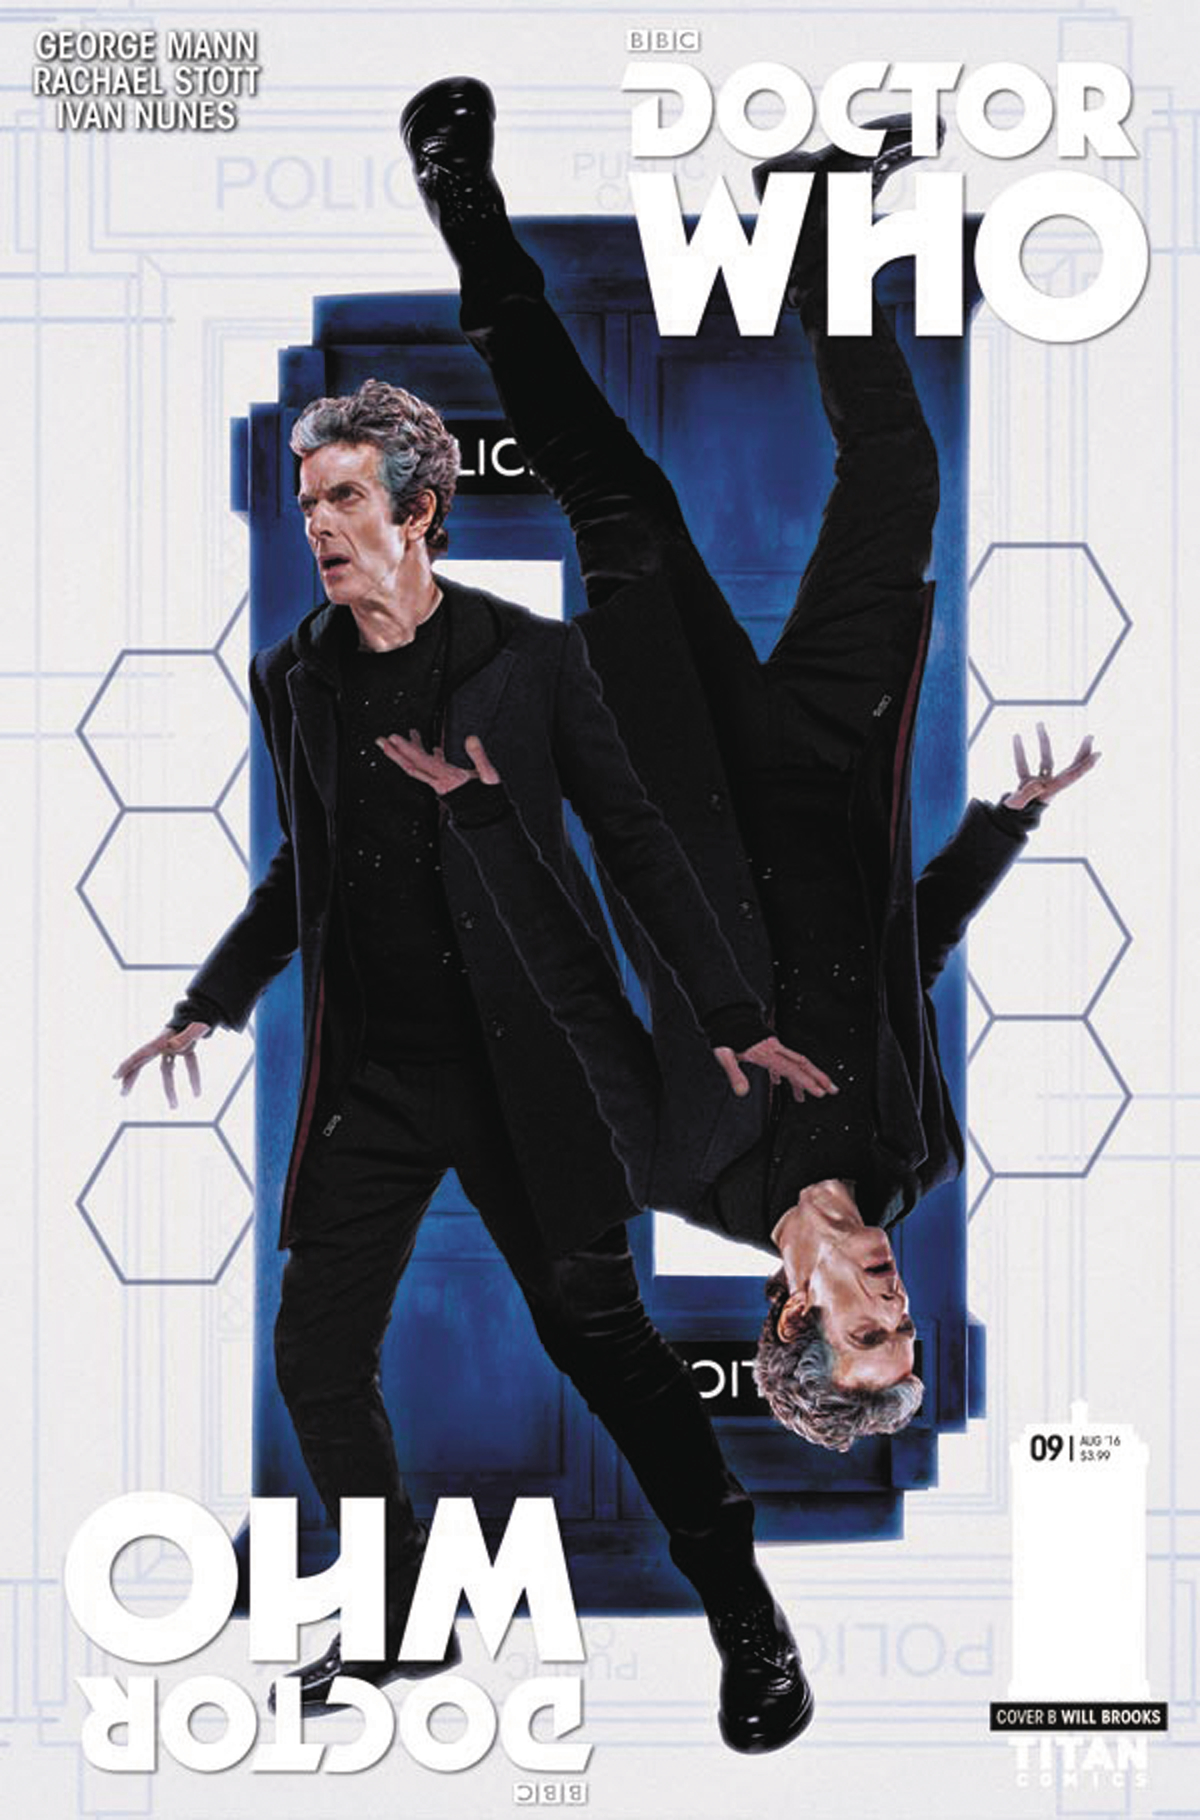 DOCTOR WHO 12TH YEAR TWO #9 CVR B PHOTO